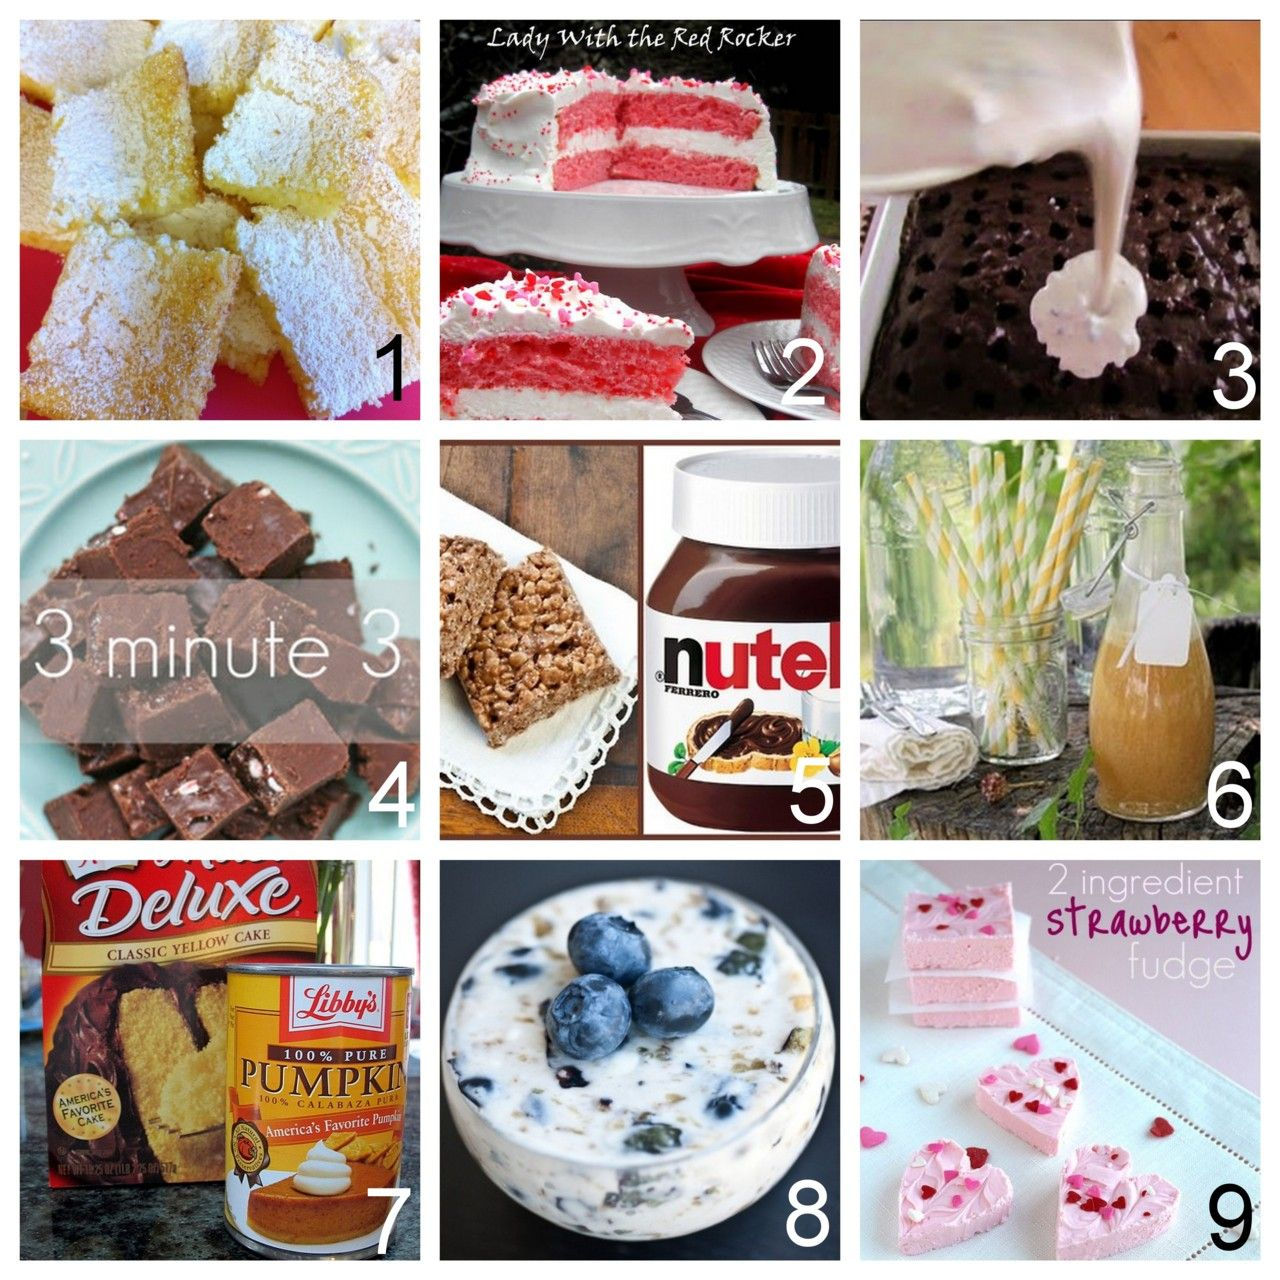 Tutorial from papery & cakery here.